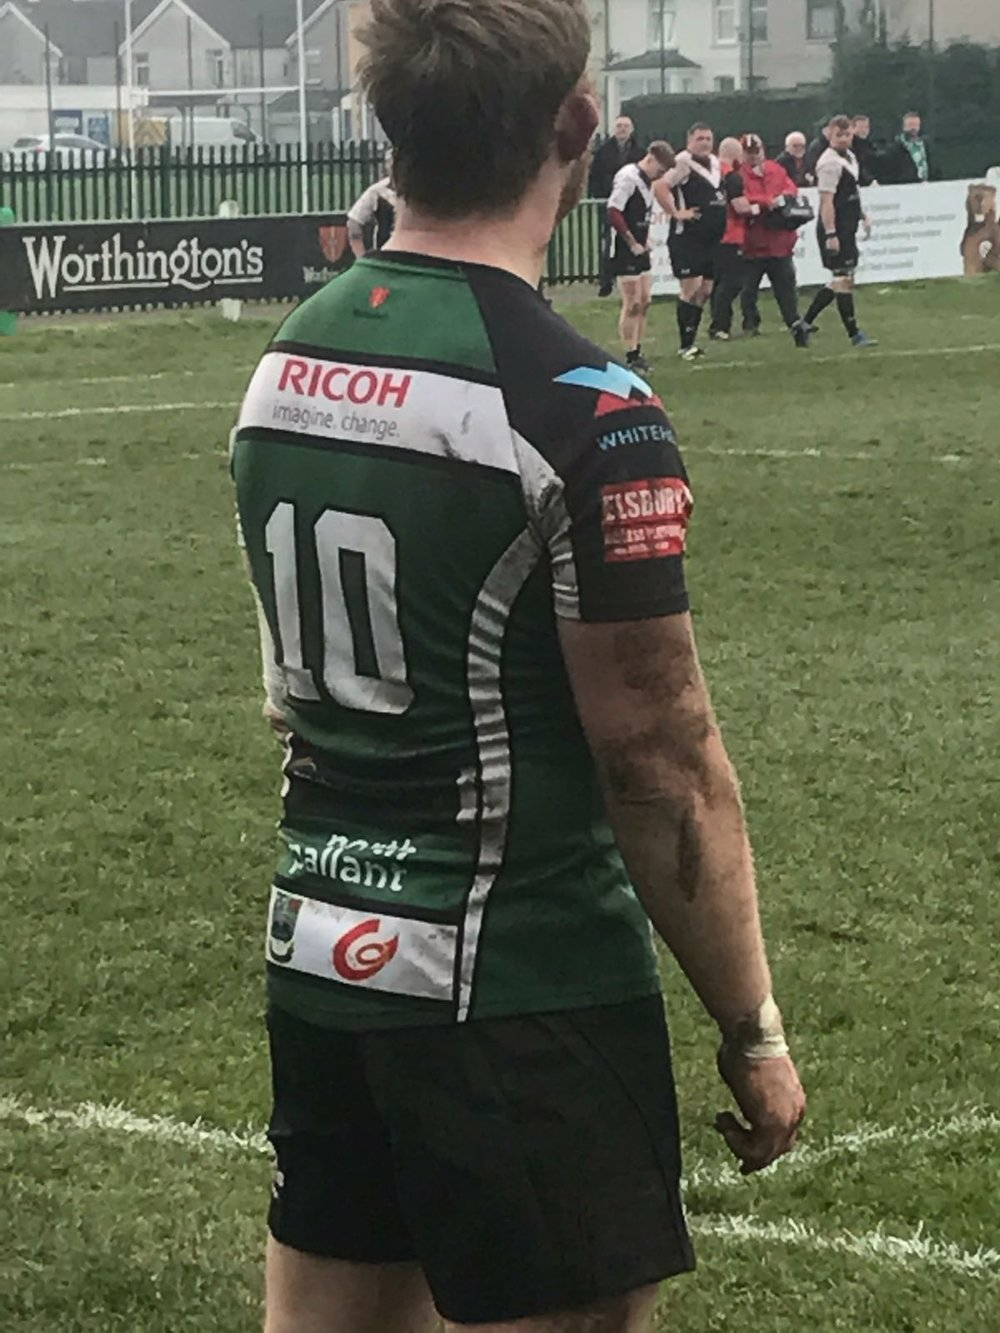 Regional Touch: Caerphilly with the Region's logo on their strip